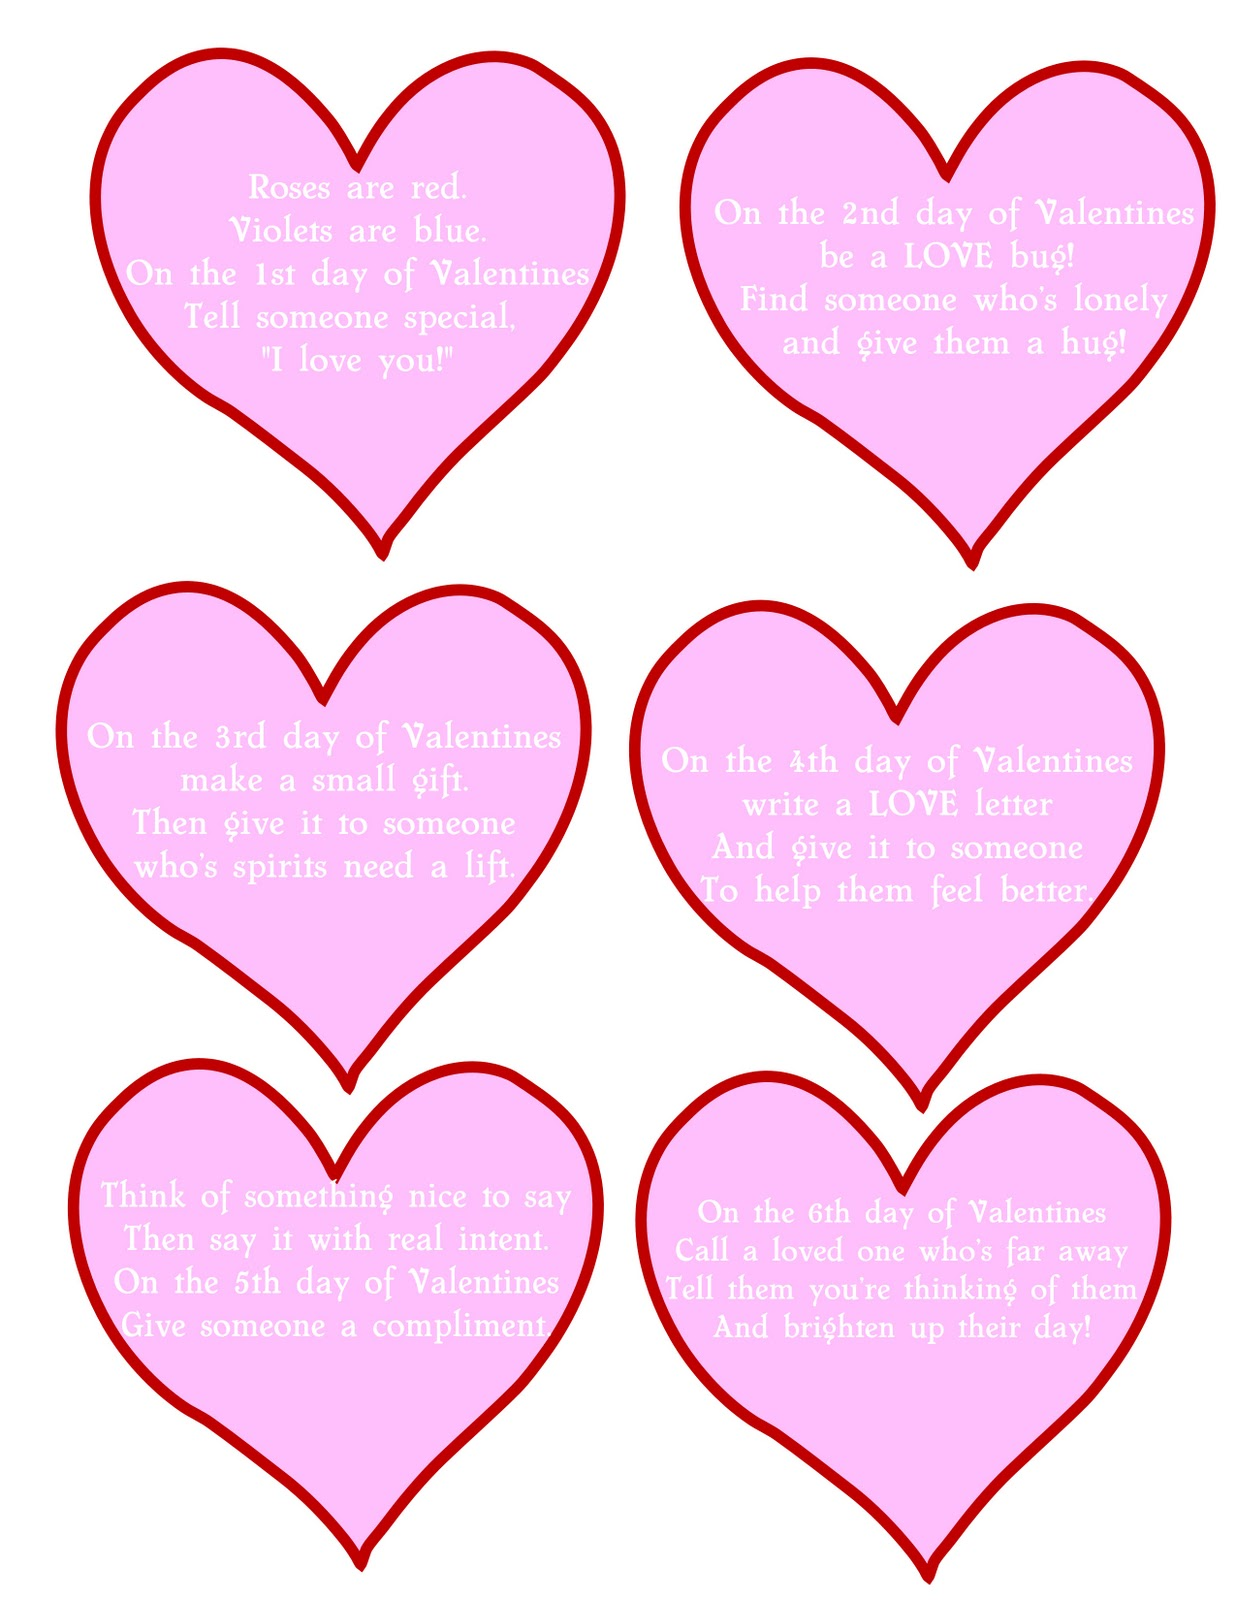 How to make a love letter garland valentine tip junkie and here is my garland as part of my victorian valentines day mantle aljukfo Gallery